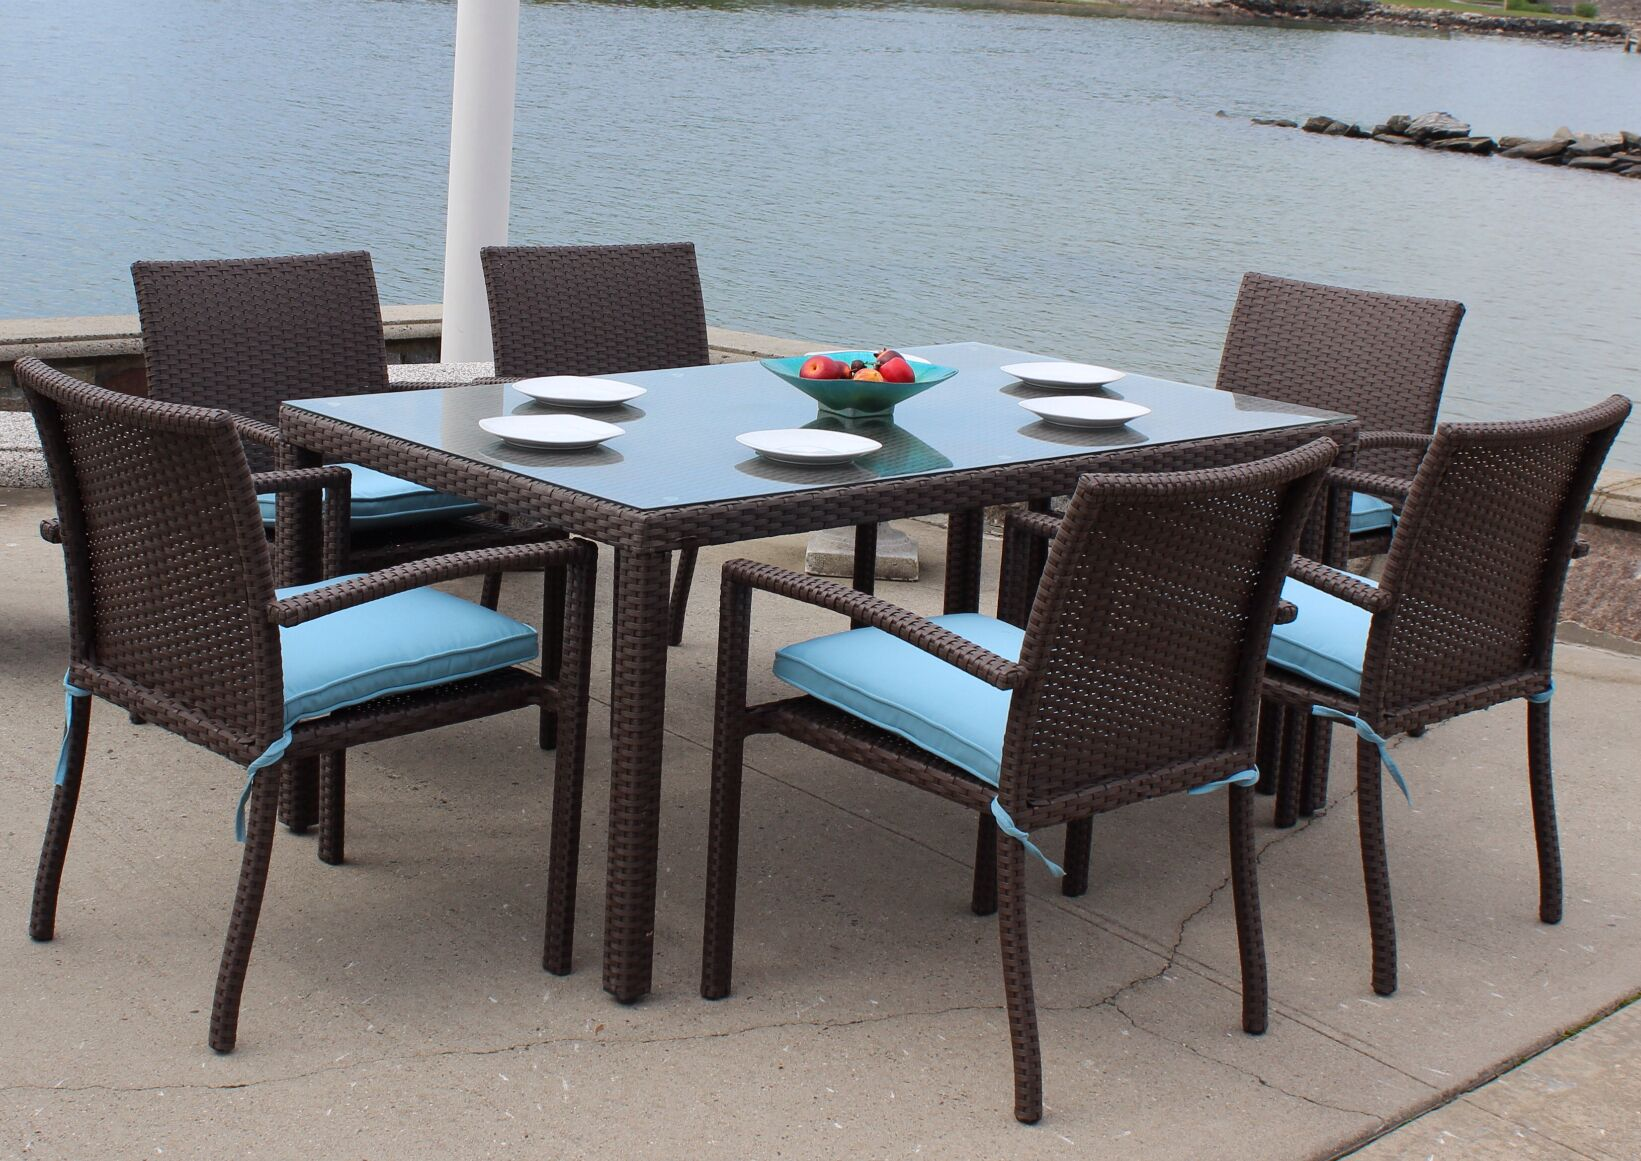 Sonoma Outdoor Wicker 7 Piece Dining Set with Cushions Cushion Color: Green White Stripe